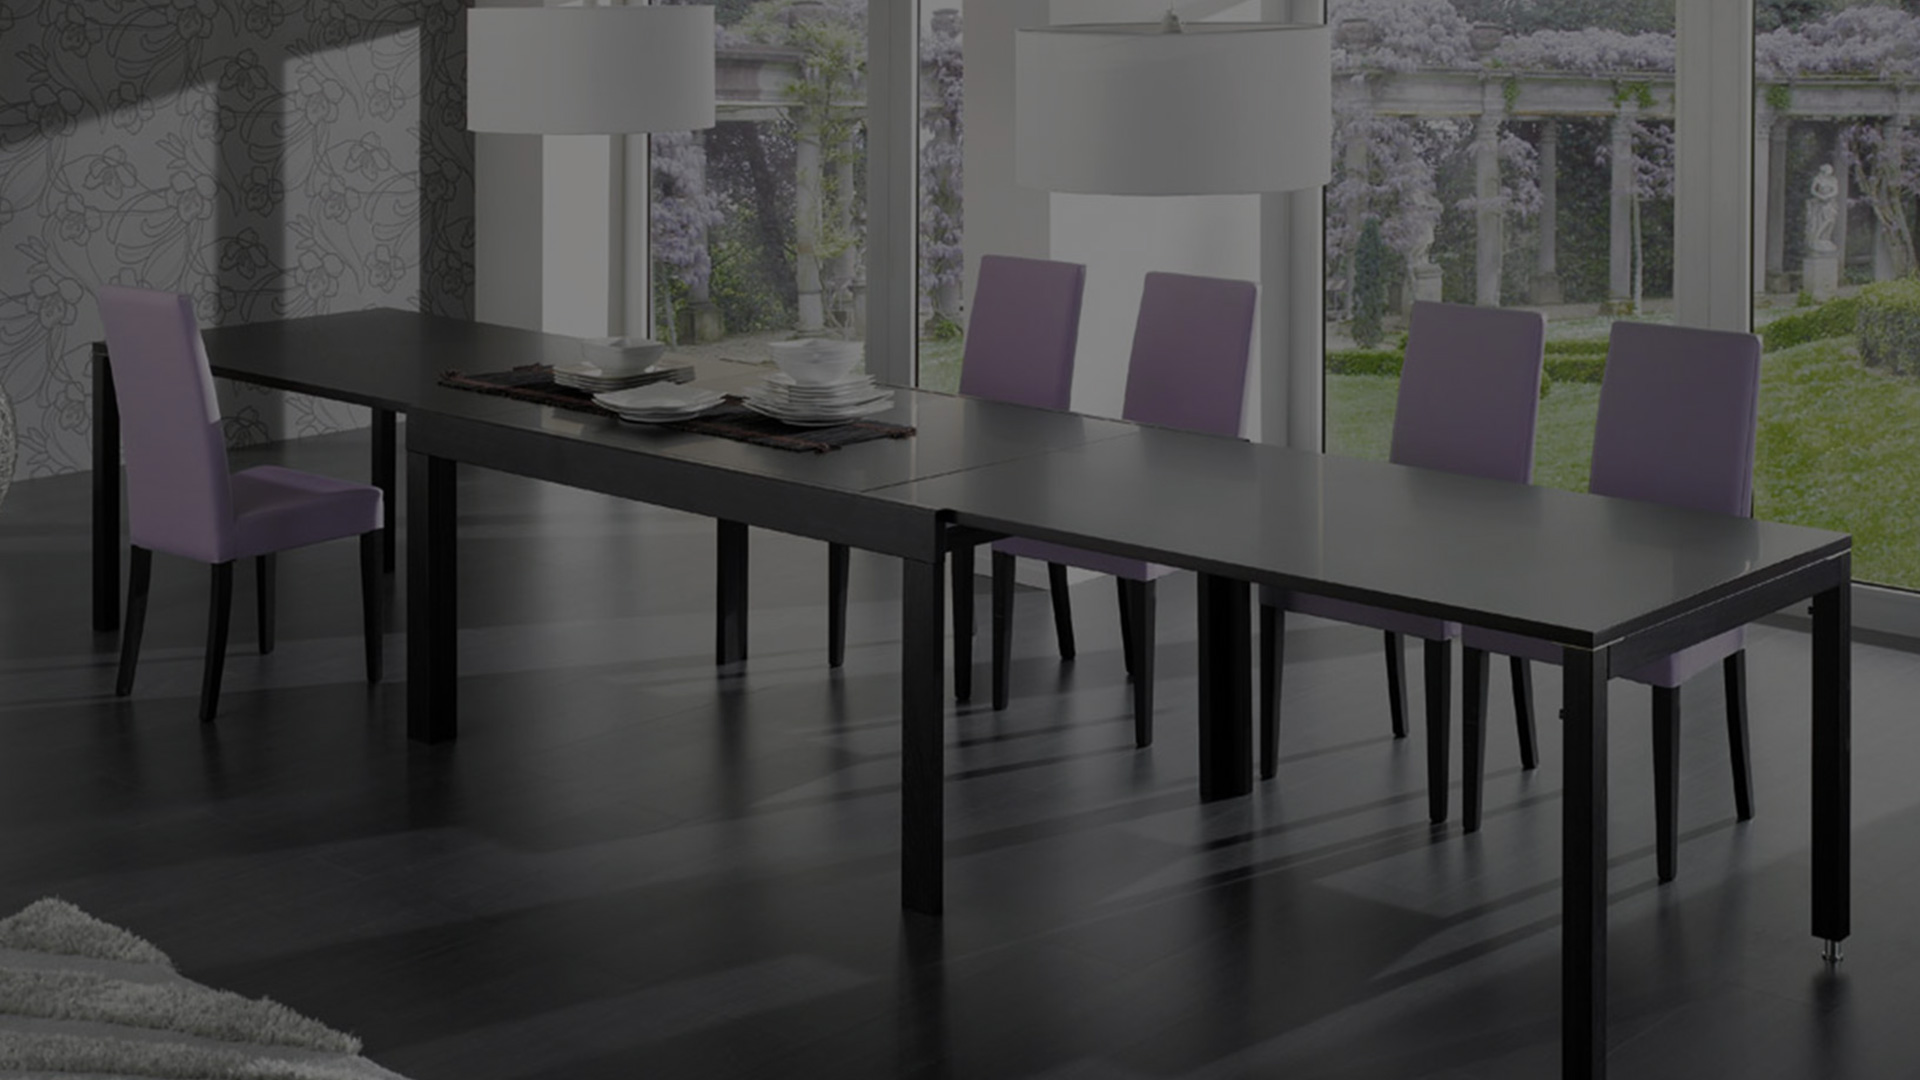 Stylish Dining Table Than Can Make Room For A Few More Guests We Have You Covered Browse Our Catalog Of Office Kitchen And Furniture Below